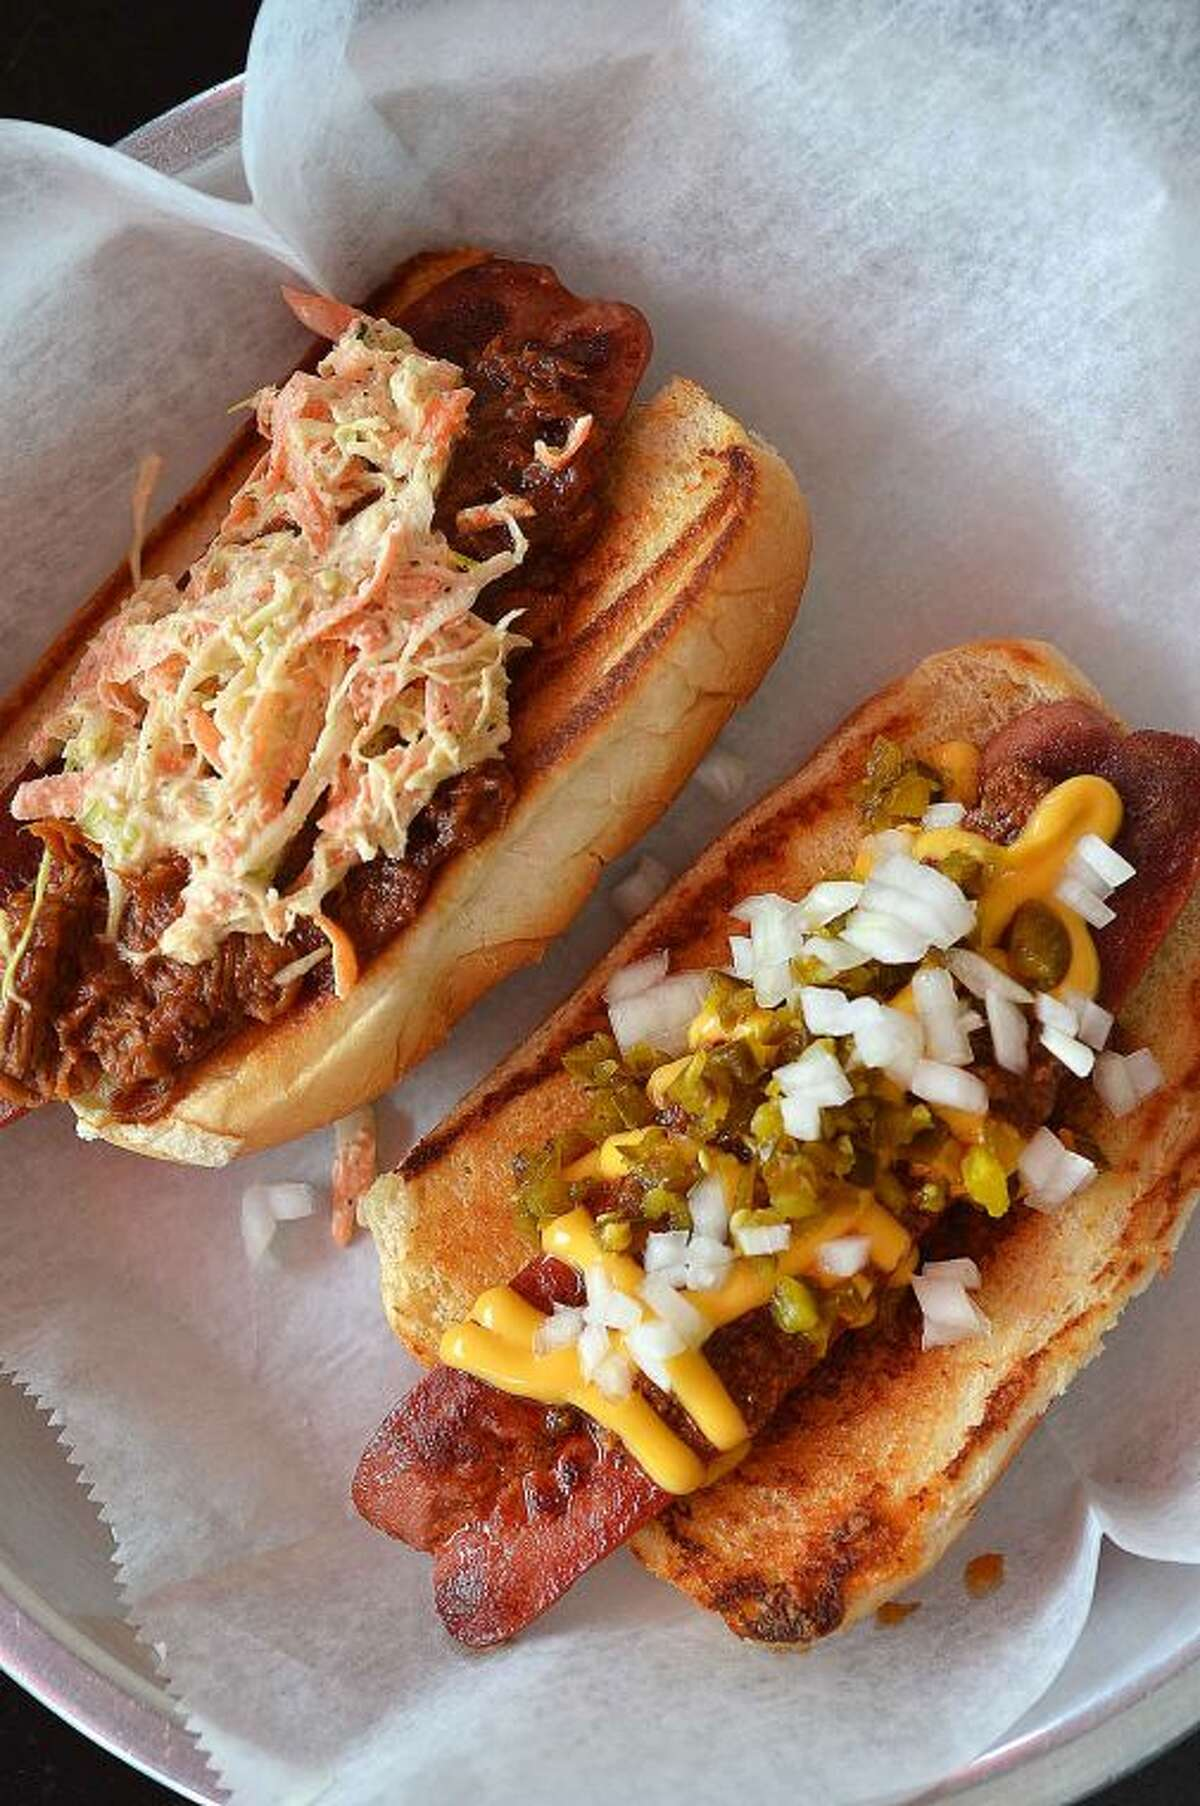 Hour Photo/Alex von Kleydorff From Bridge Street Wienery in Stamford two of the popular dogs are, The Squeeler, BBQ Pulled Pork and Coleslaw and the Lil-Lo Dog with Home made Chili, Chopped Onions and jalapenos and Cheese Sauce.